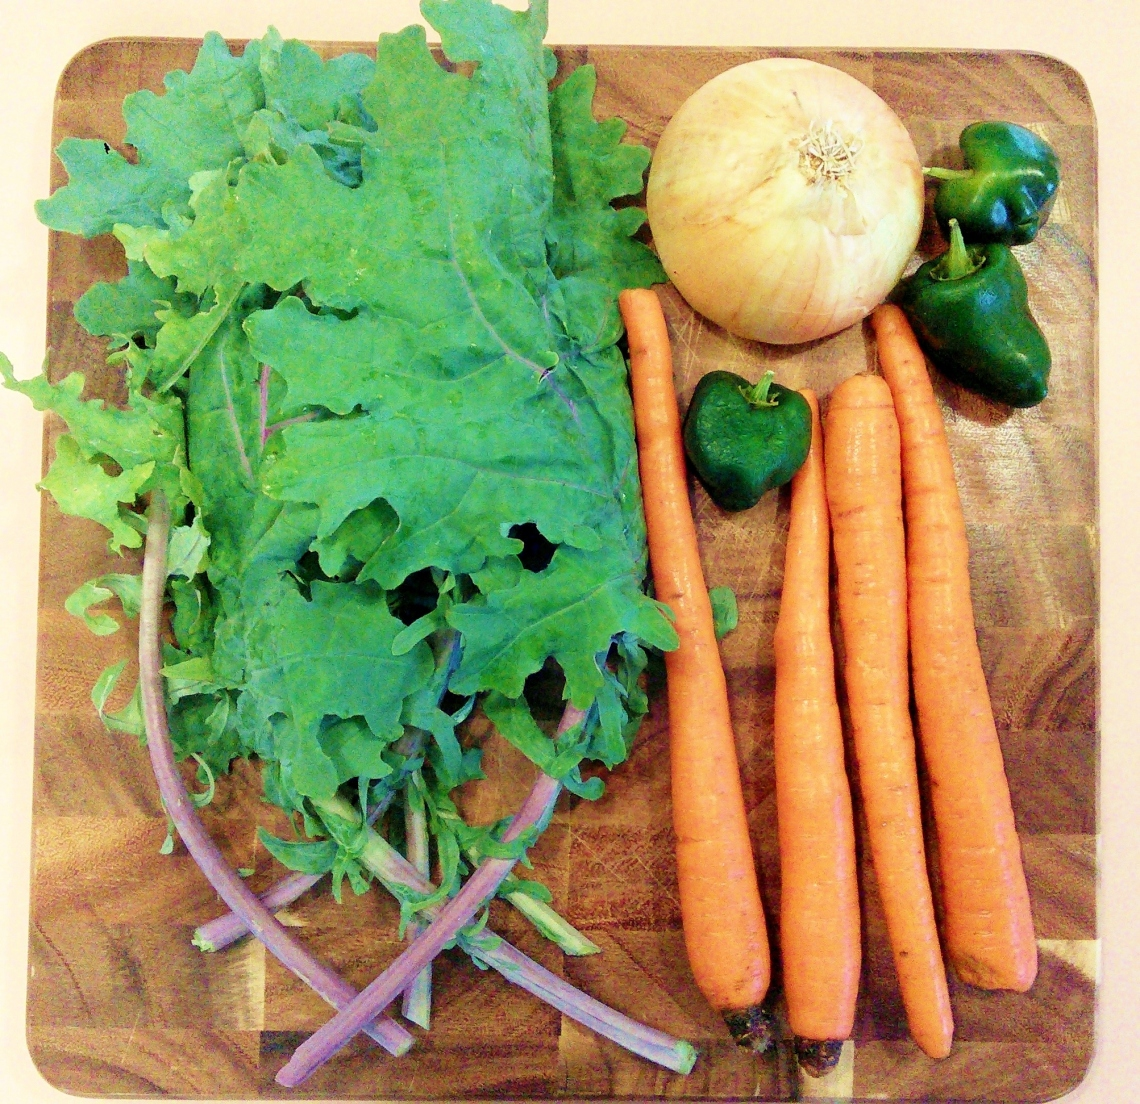 kale onion carrot peppers